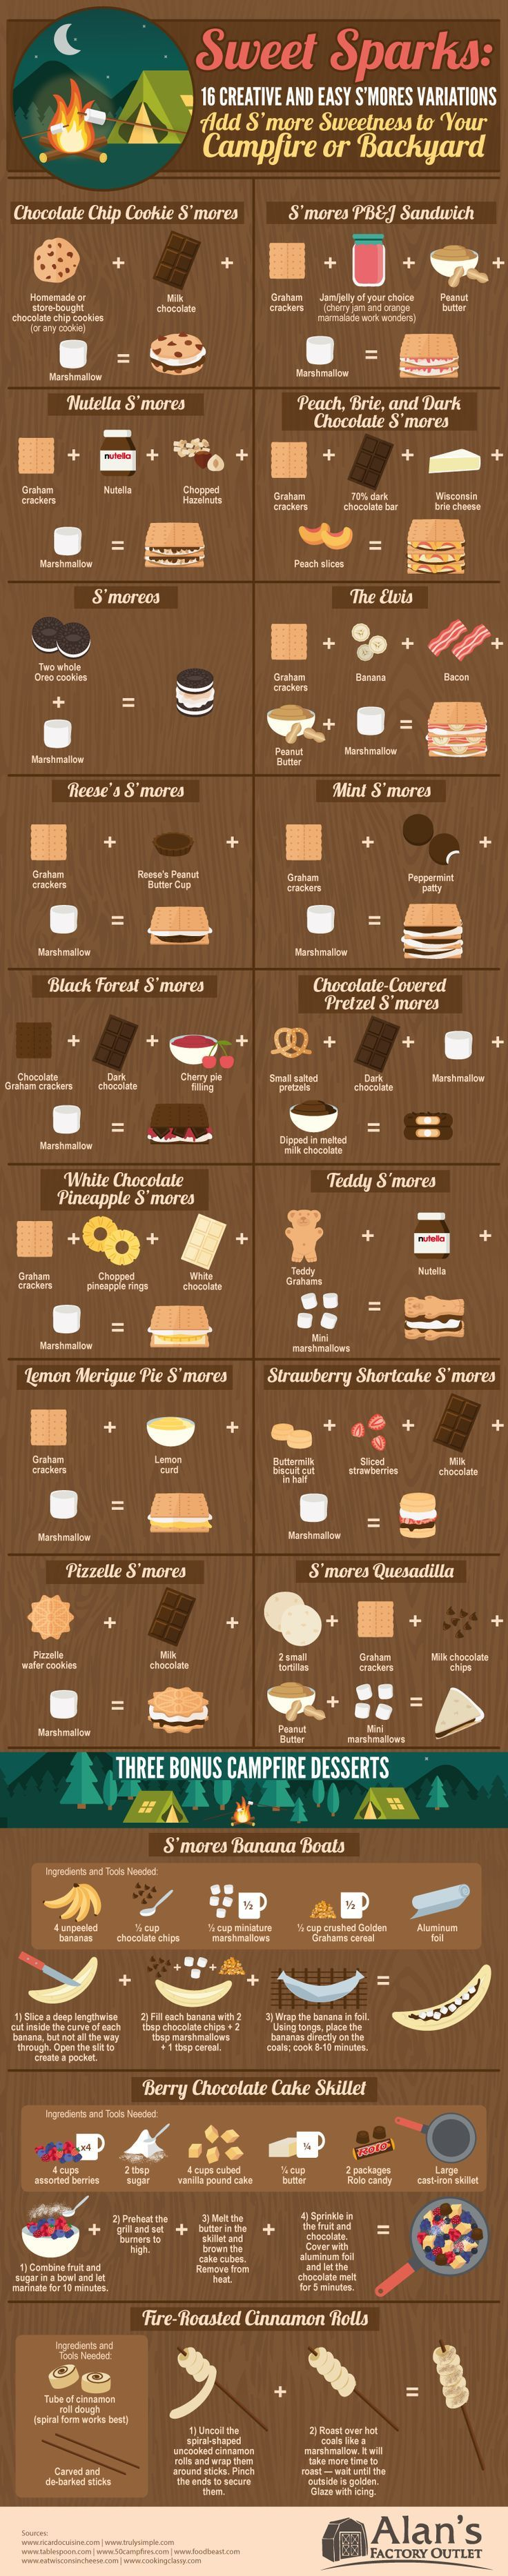 Sweet Sparks: 16 Creative and Easy S'Mores Variations #Infographic #Food.... See more at the image link